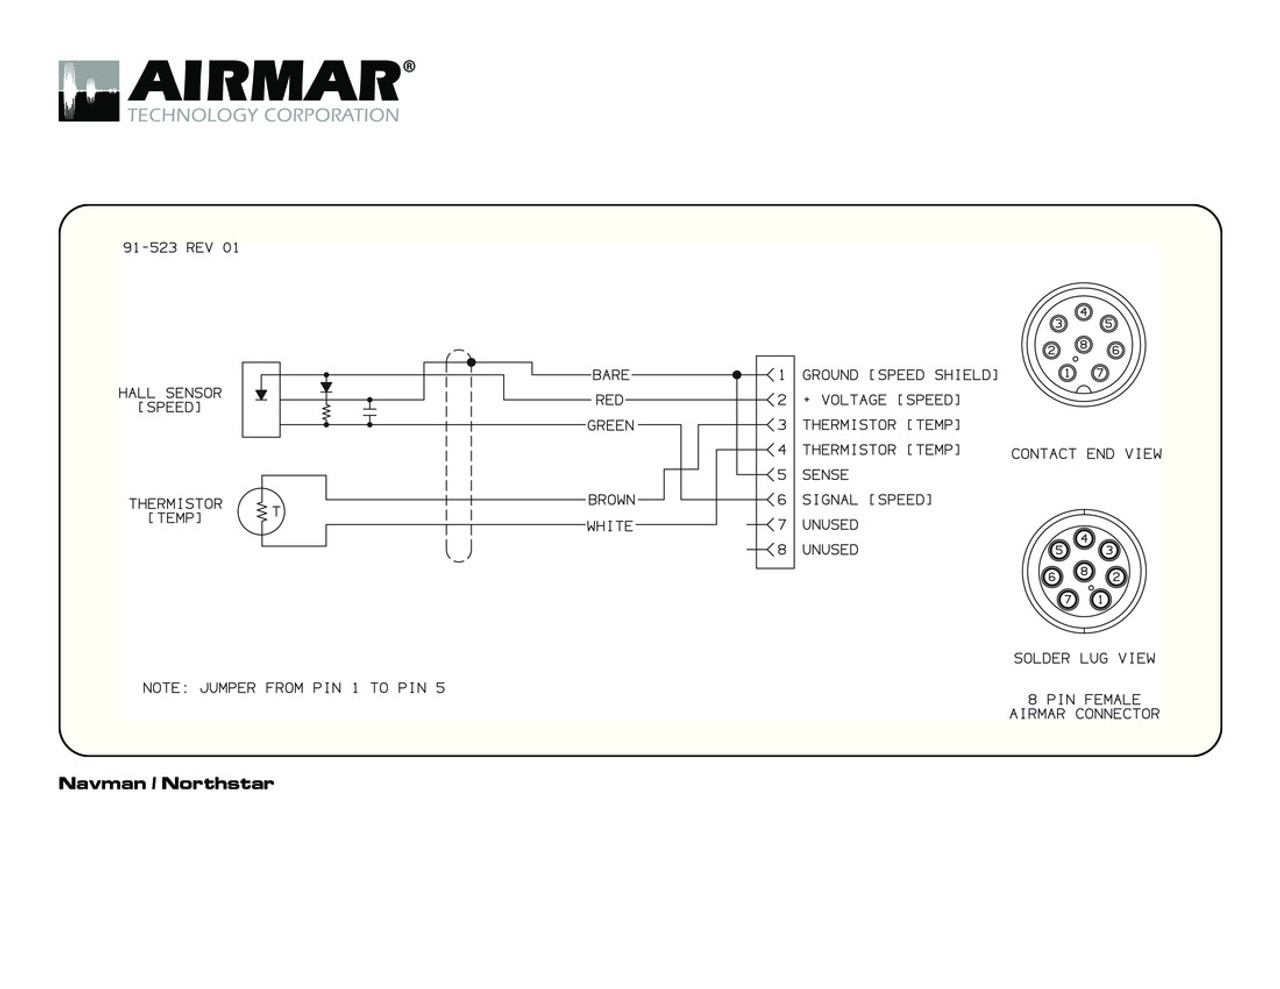 northstar wiring diagram schema wiring diagram online airmar wiring diagram navman northstar blue bottle marine mercruiser smartcraft wiring diagram northstar wiring diagram